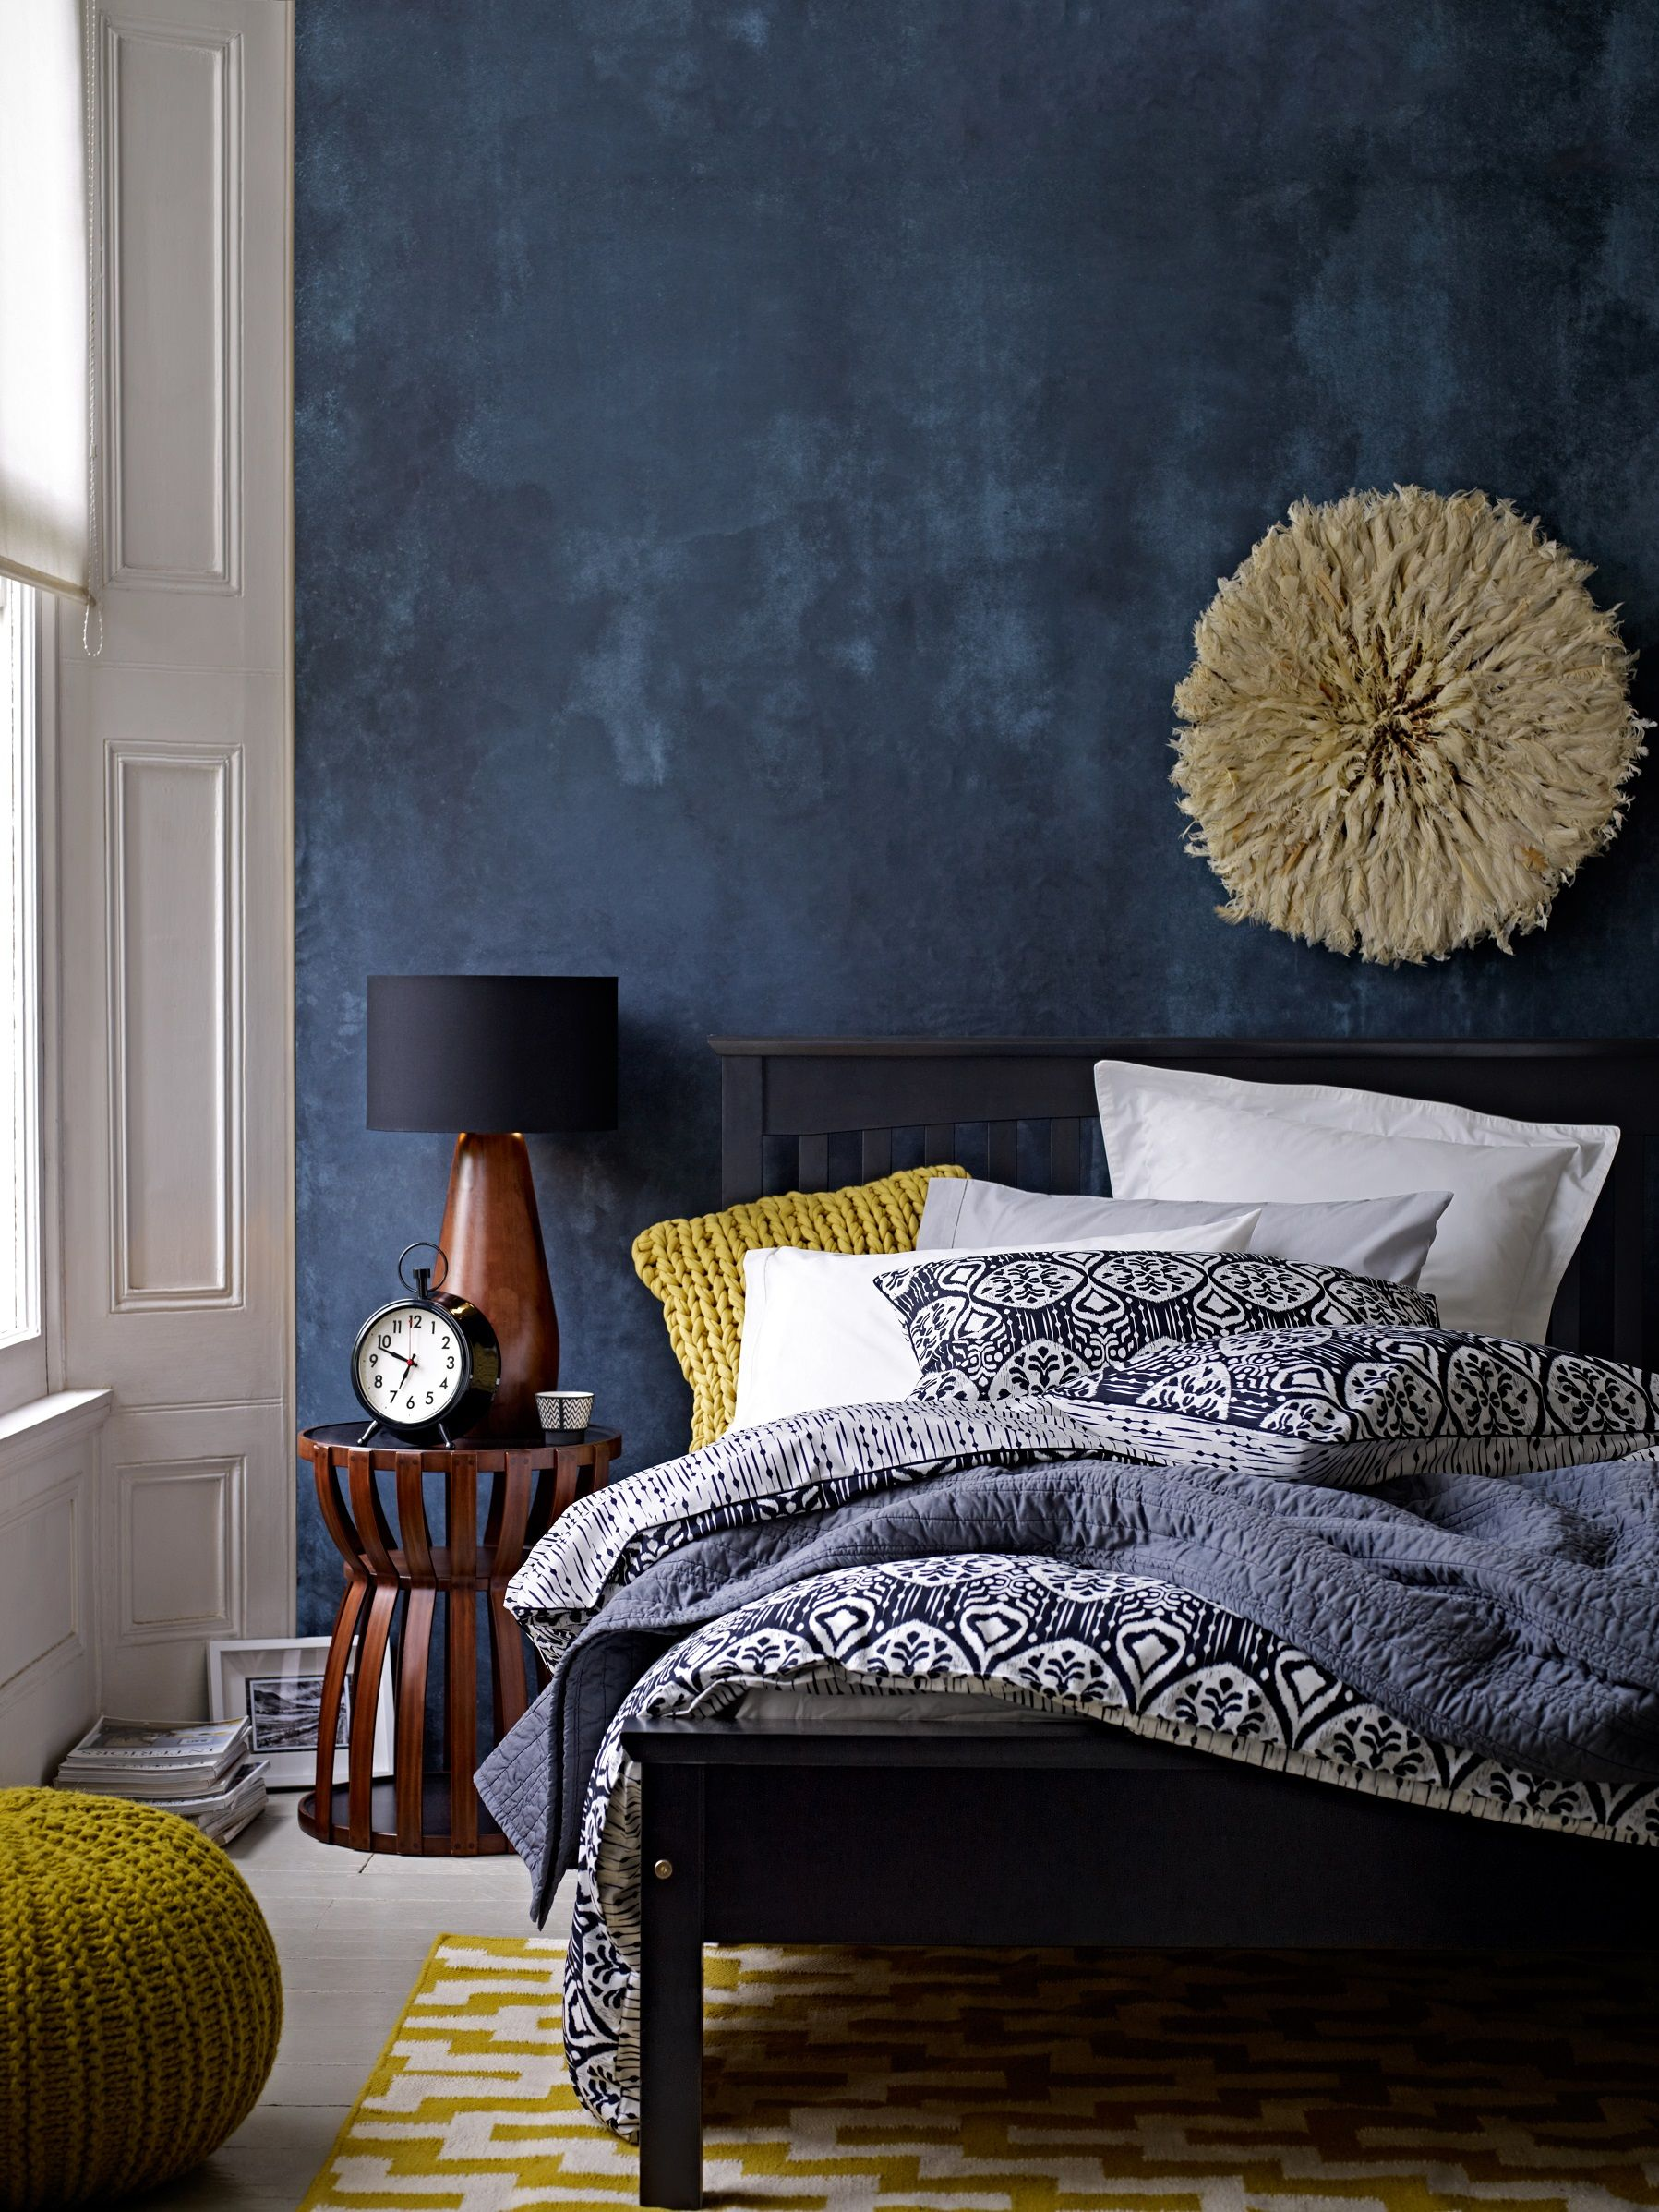 Deep blue accent wall in modern eclectic bedroom gorgeous use of color with wall and bedding